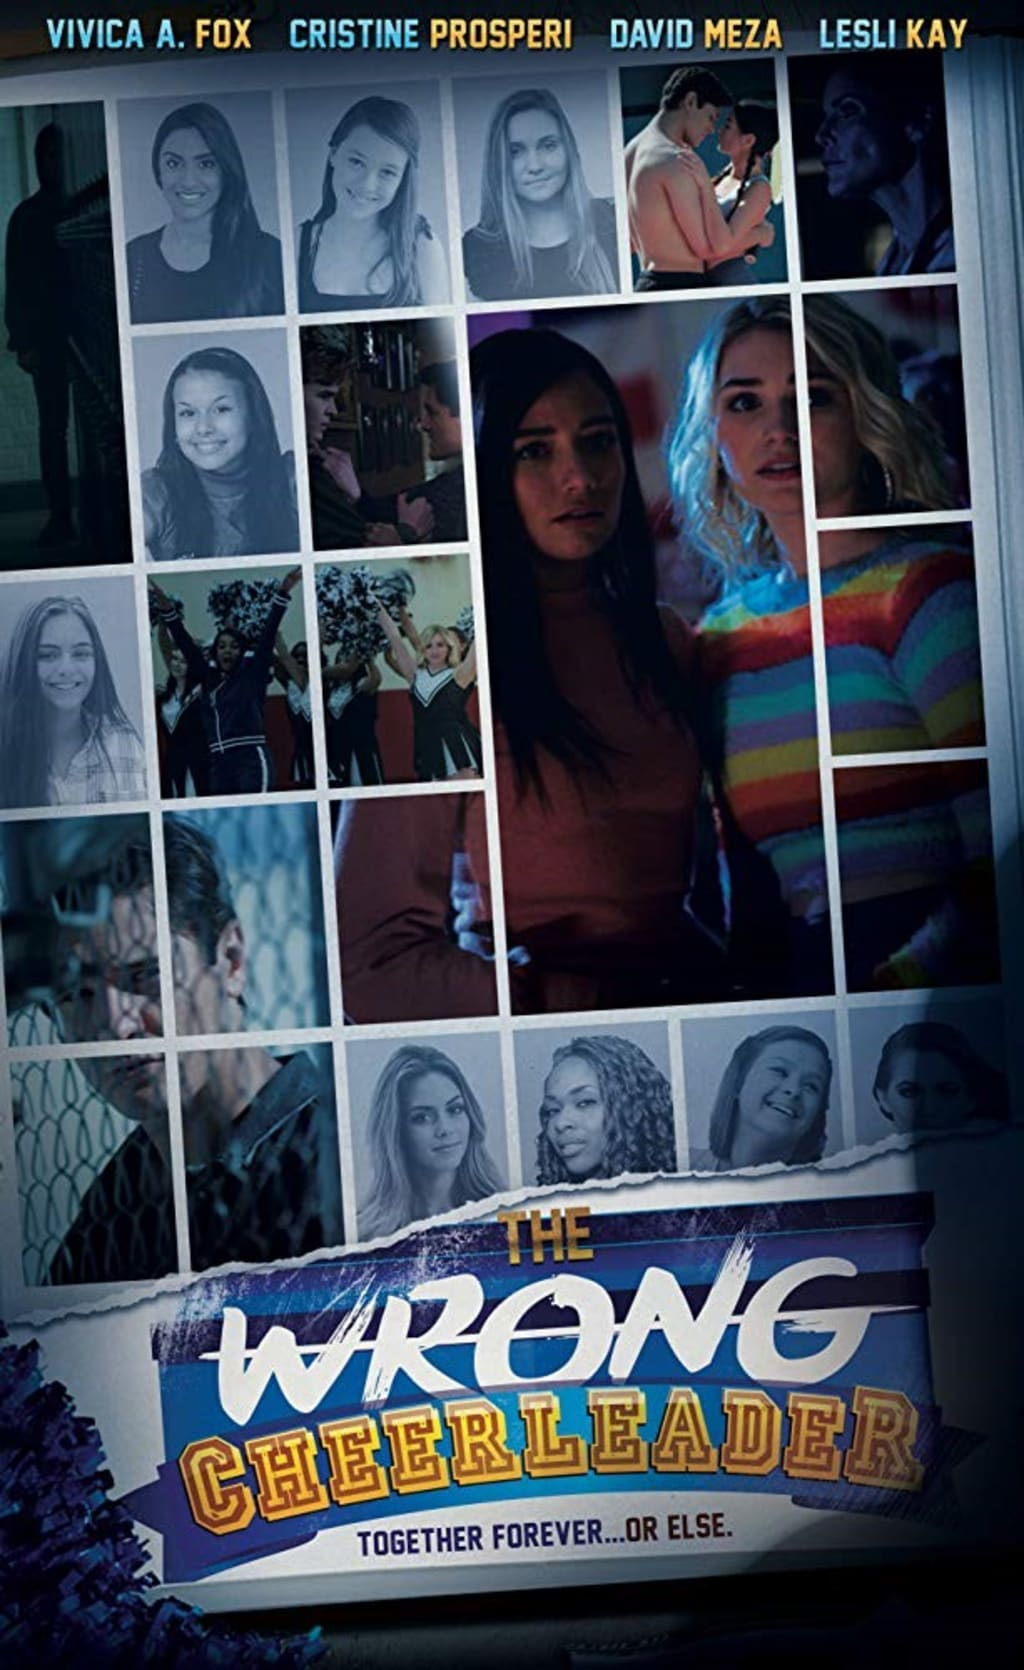 Lifetime Review: 'The Wrong Cheerleader'